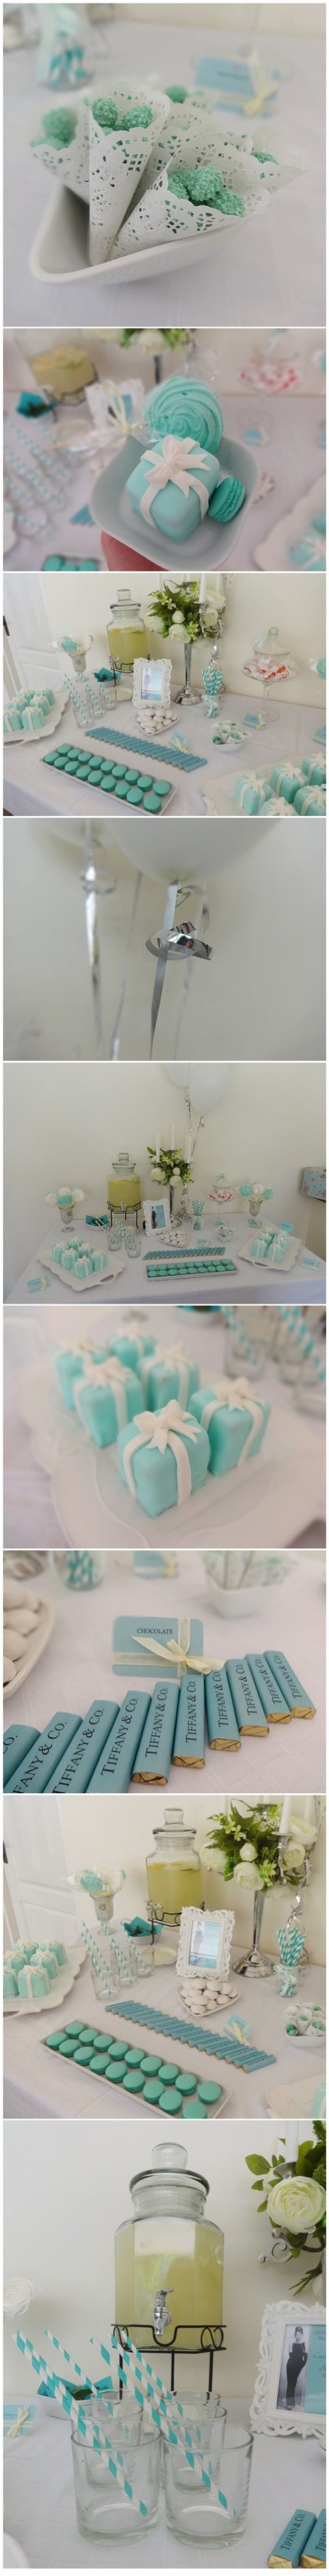 Elegant Tiffany Blue Candy or Dessert Buffet Package. Customized just for you. Great for Wedding Receptions, Bridal Creating,birthday party, andrada irimies, cluj, candy bar, candy buffet, www.andradairimie..., tiffany & co, theme, baby shower, wedding, inspiration, shabby chic, chocolate, merci, nunta, audrey hepburn, ciocolata personalizata